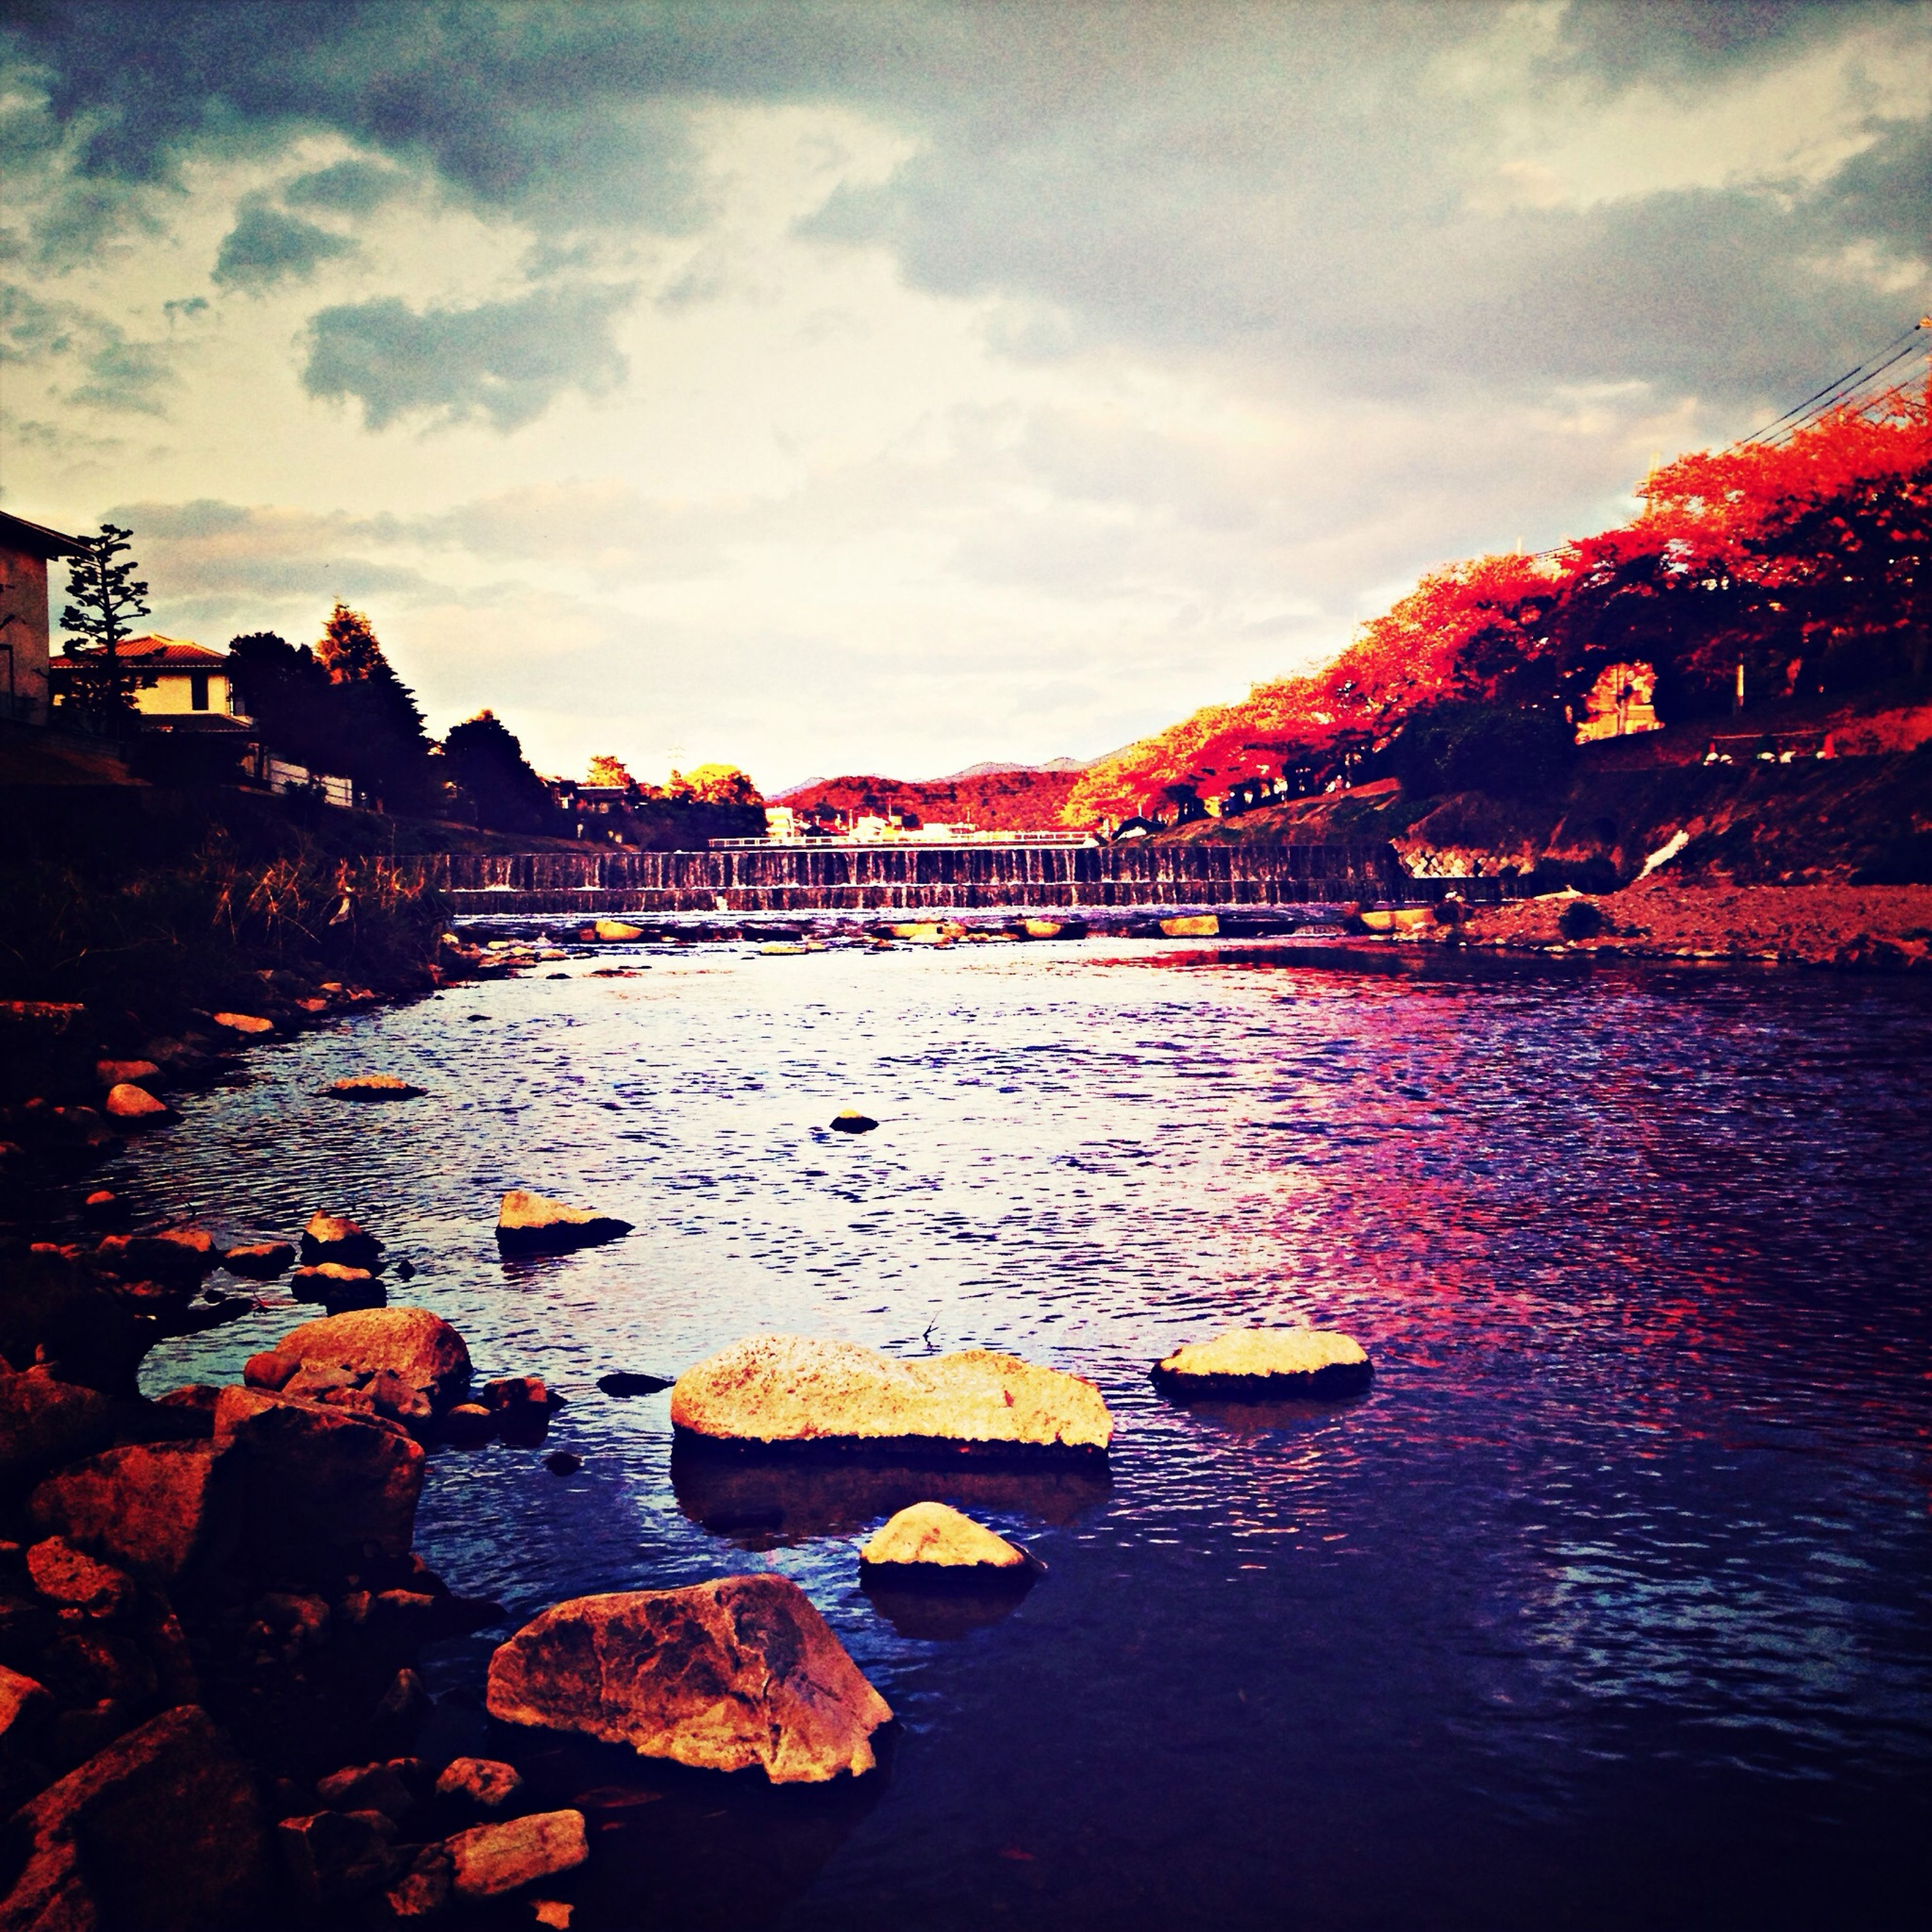 water, sky, architecture, built structure, cloud - sky, building exterior, reflection, river, waterfront, autumn, lake, sunset, cloud, nature, cloudy, outdoors, change, rock - object, beauty in nature, tranquility